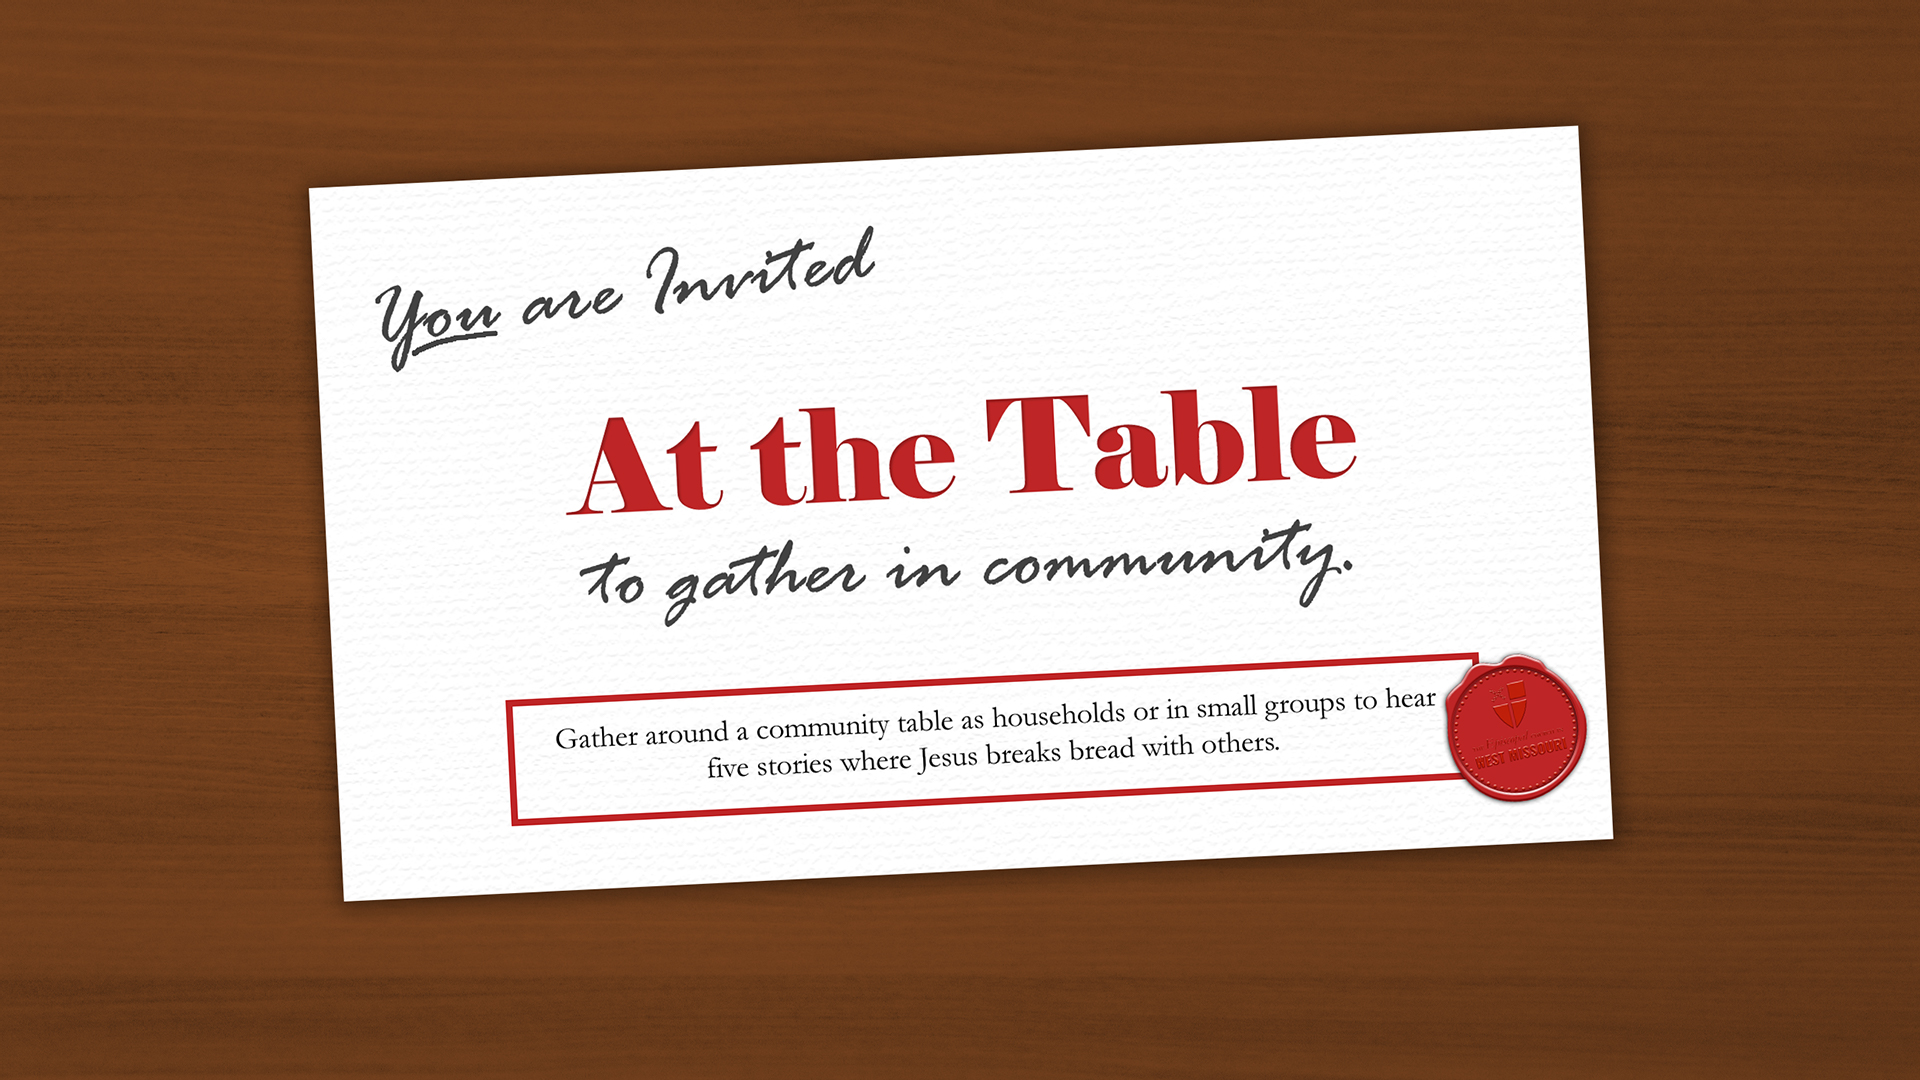 There is space for conversation 'At the Table' why not come and join us?